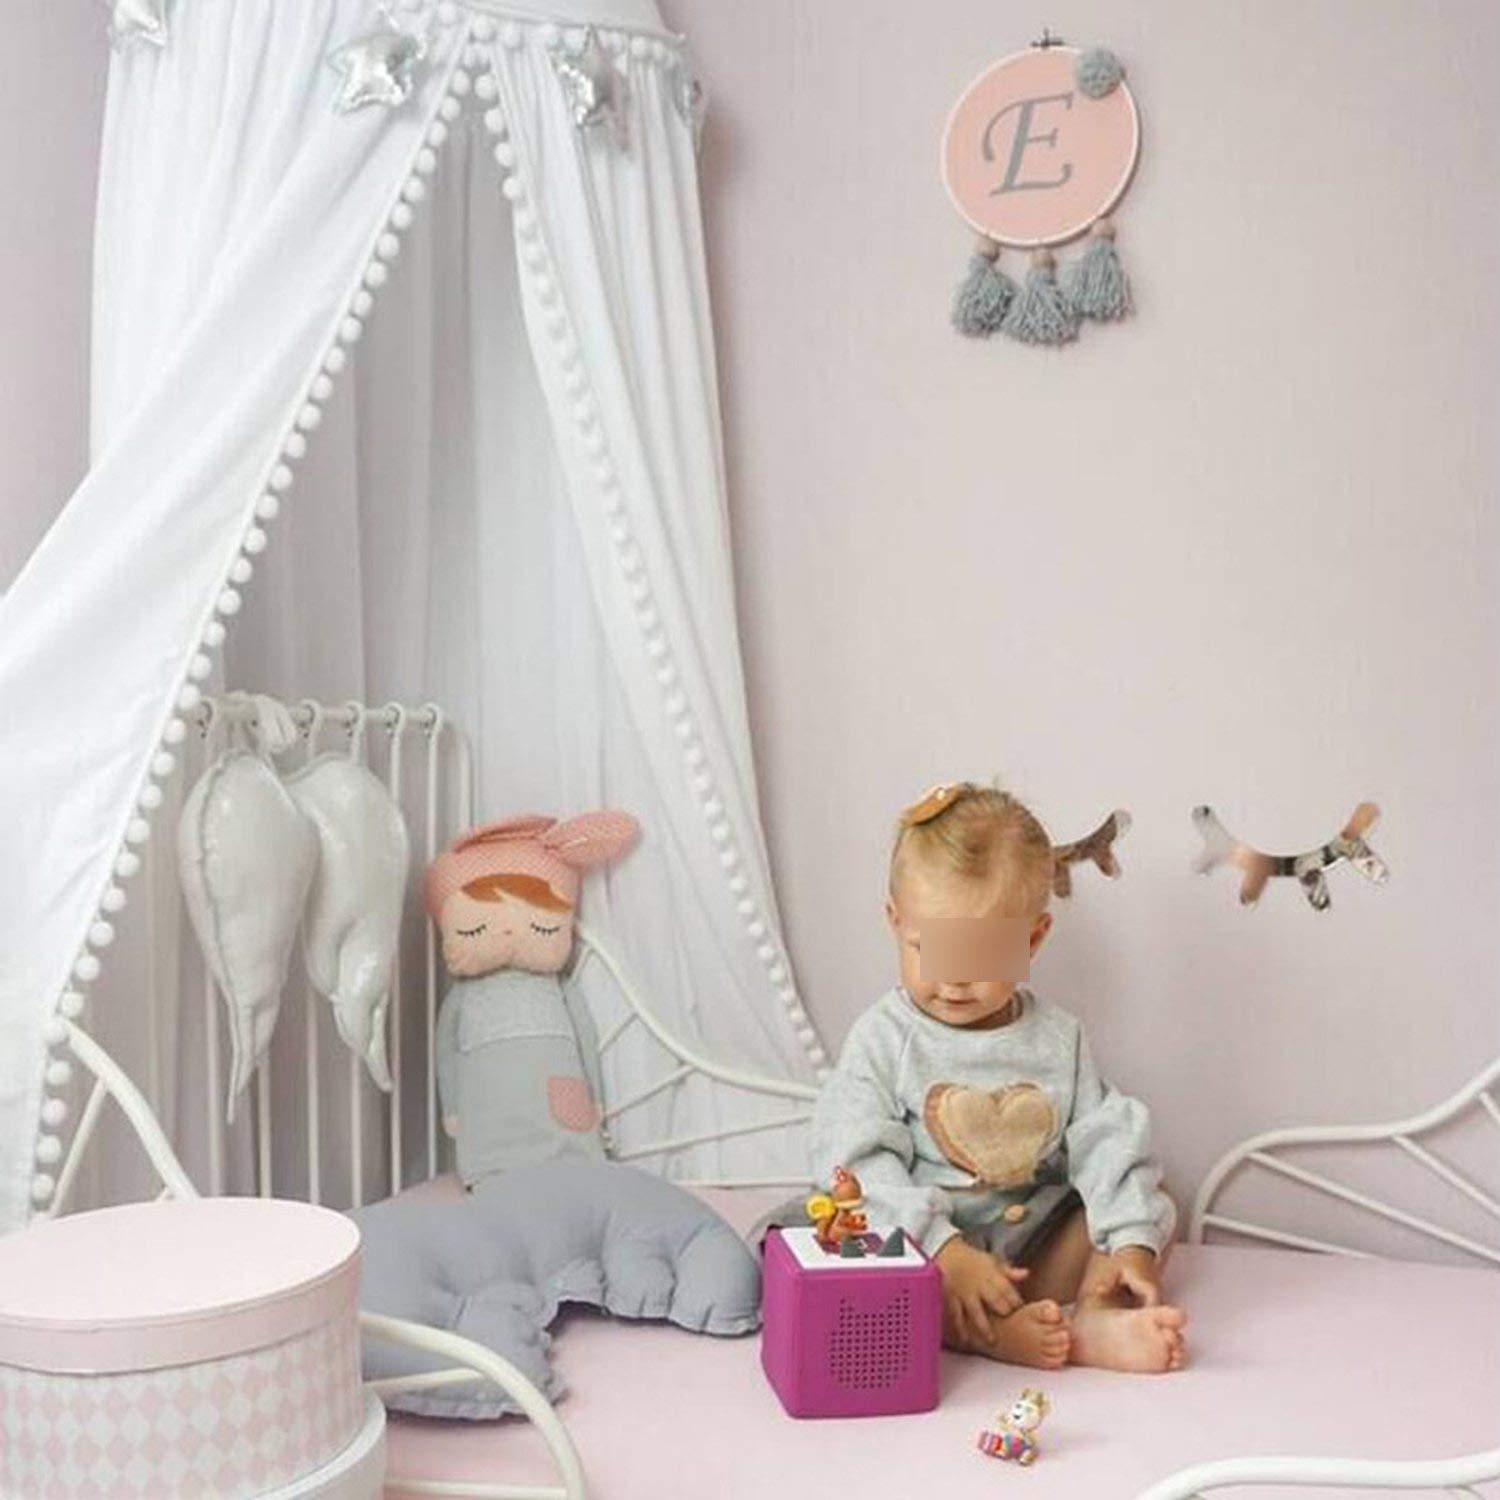 Cotton Baby Room Decoration Balls Mosquito Net Kids Bed Curtain Canopy Round Crib Netting Tent 245Cm,White,Length 245Cm Top Le by Try My Best Mosquito Net (Image #3)